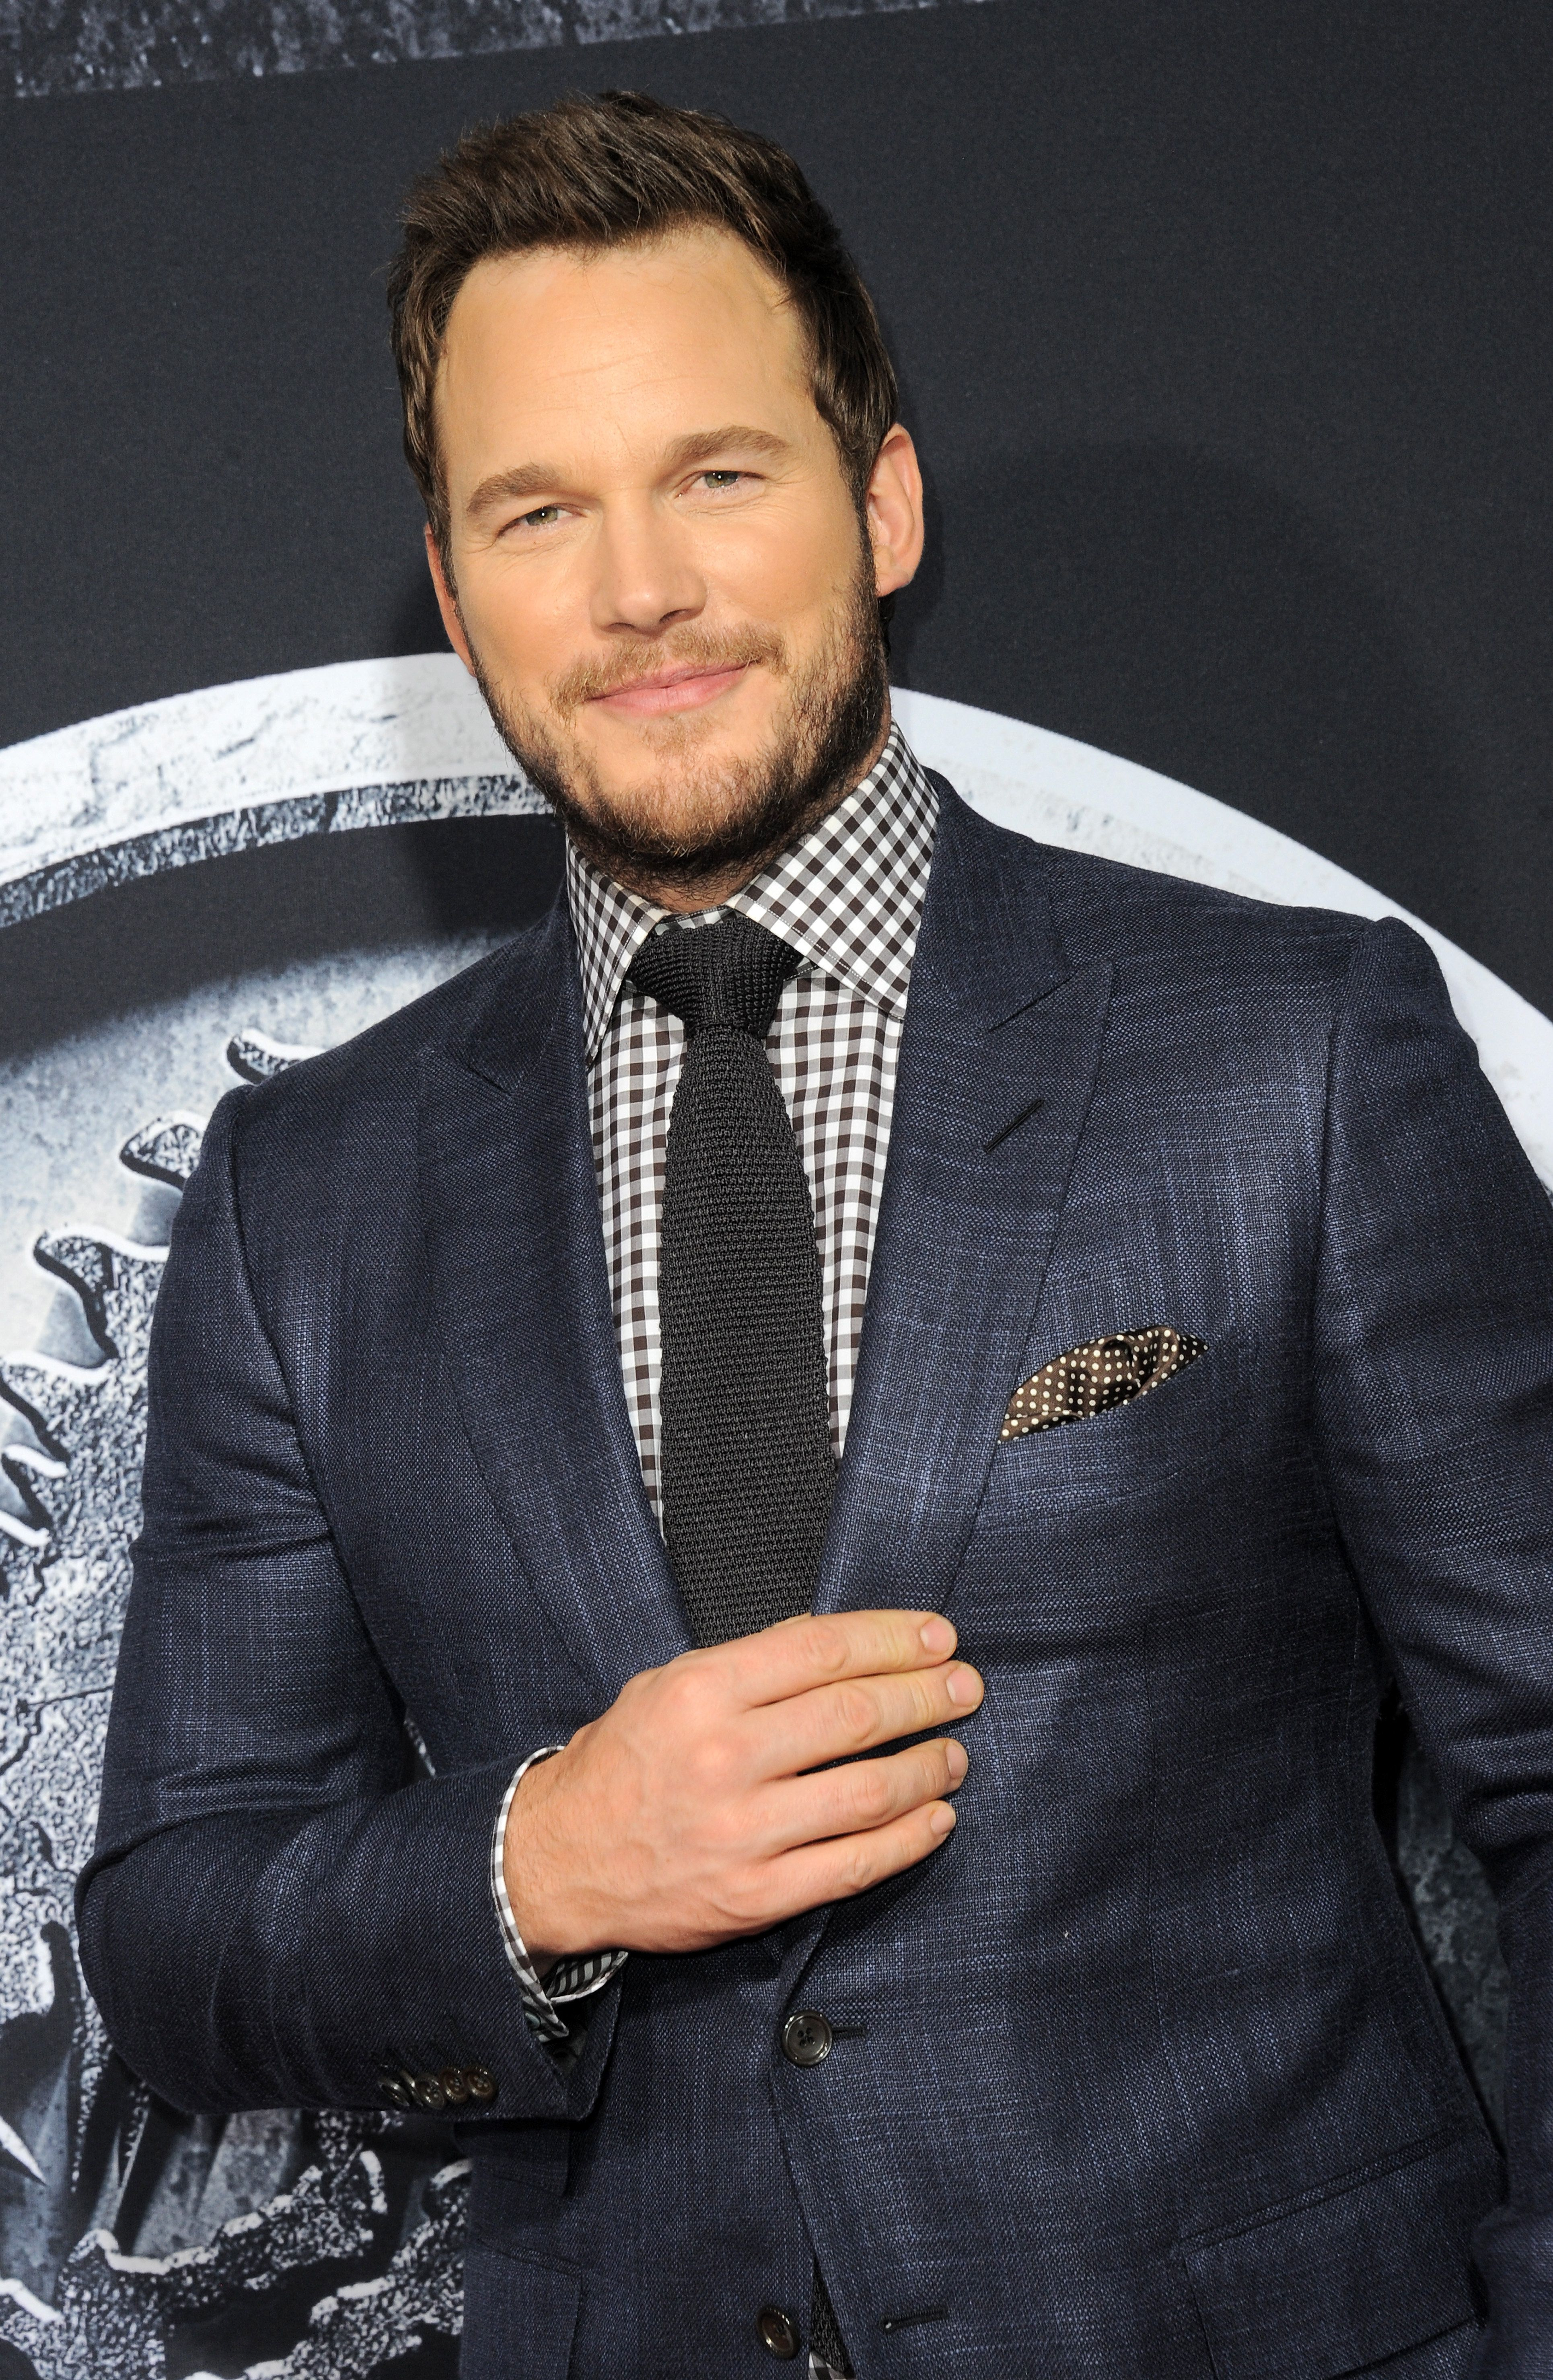 Chris Pratt arrives for the premiere Of Universal Pictures' 'Jurassic World' in Hollywood in 2015.